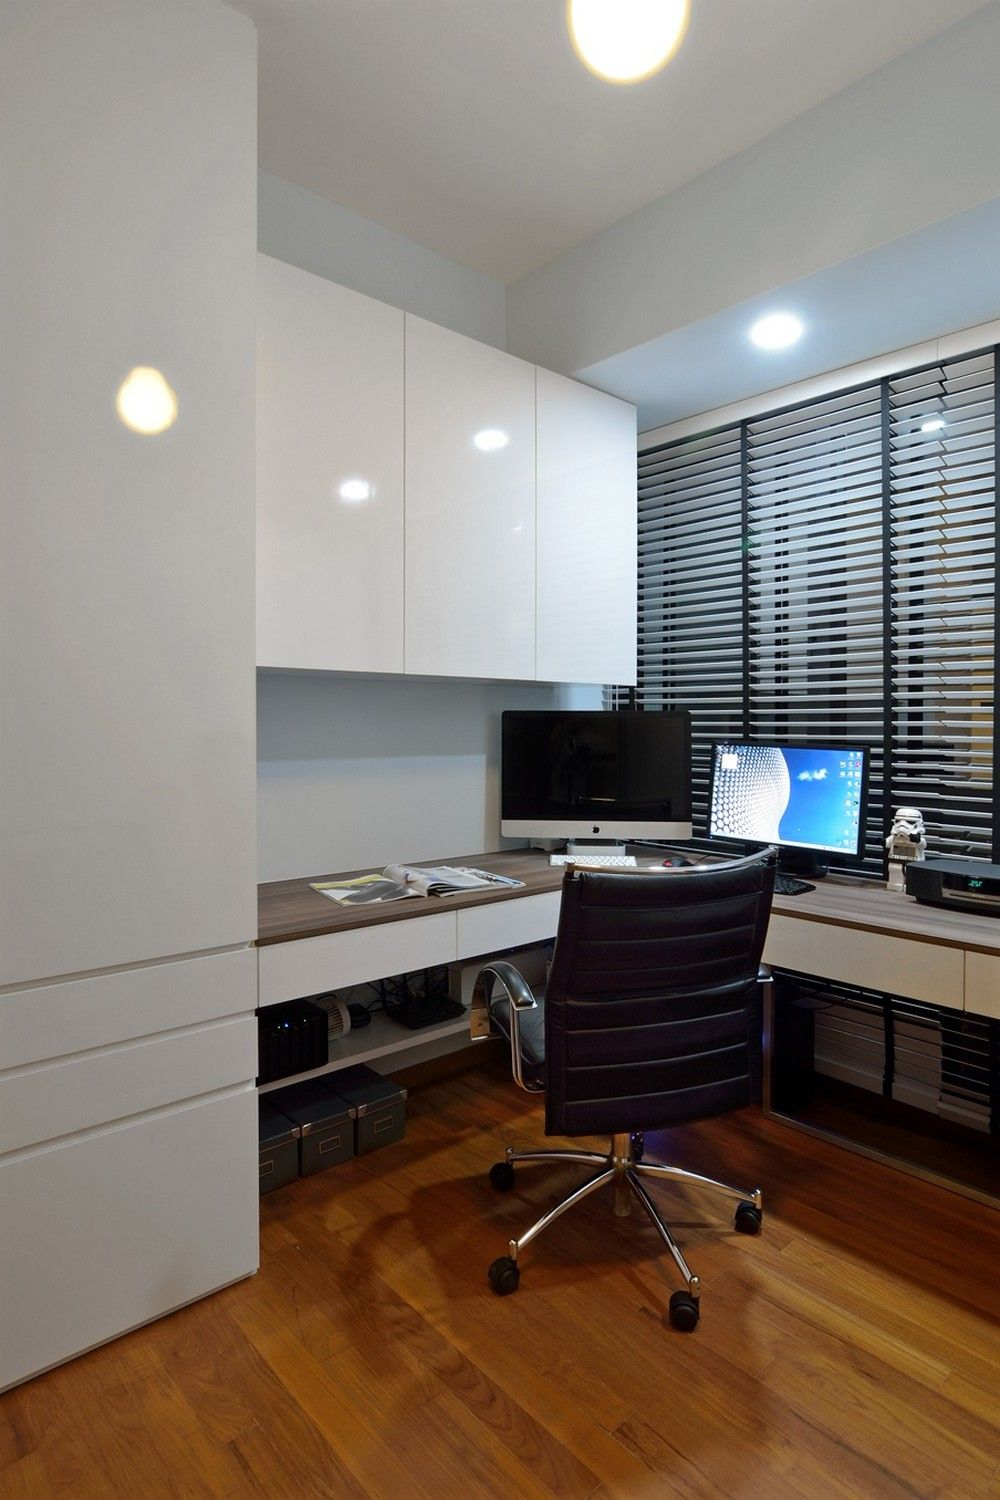 Singapore Hdb Room With Study Table: Singapore Modern Study Room Design\